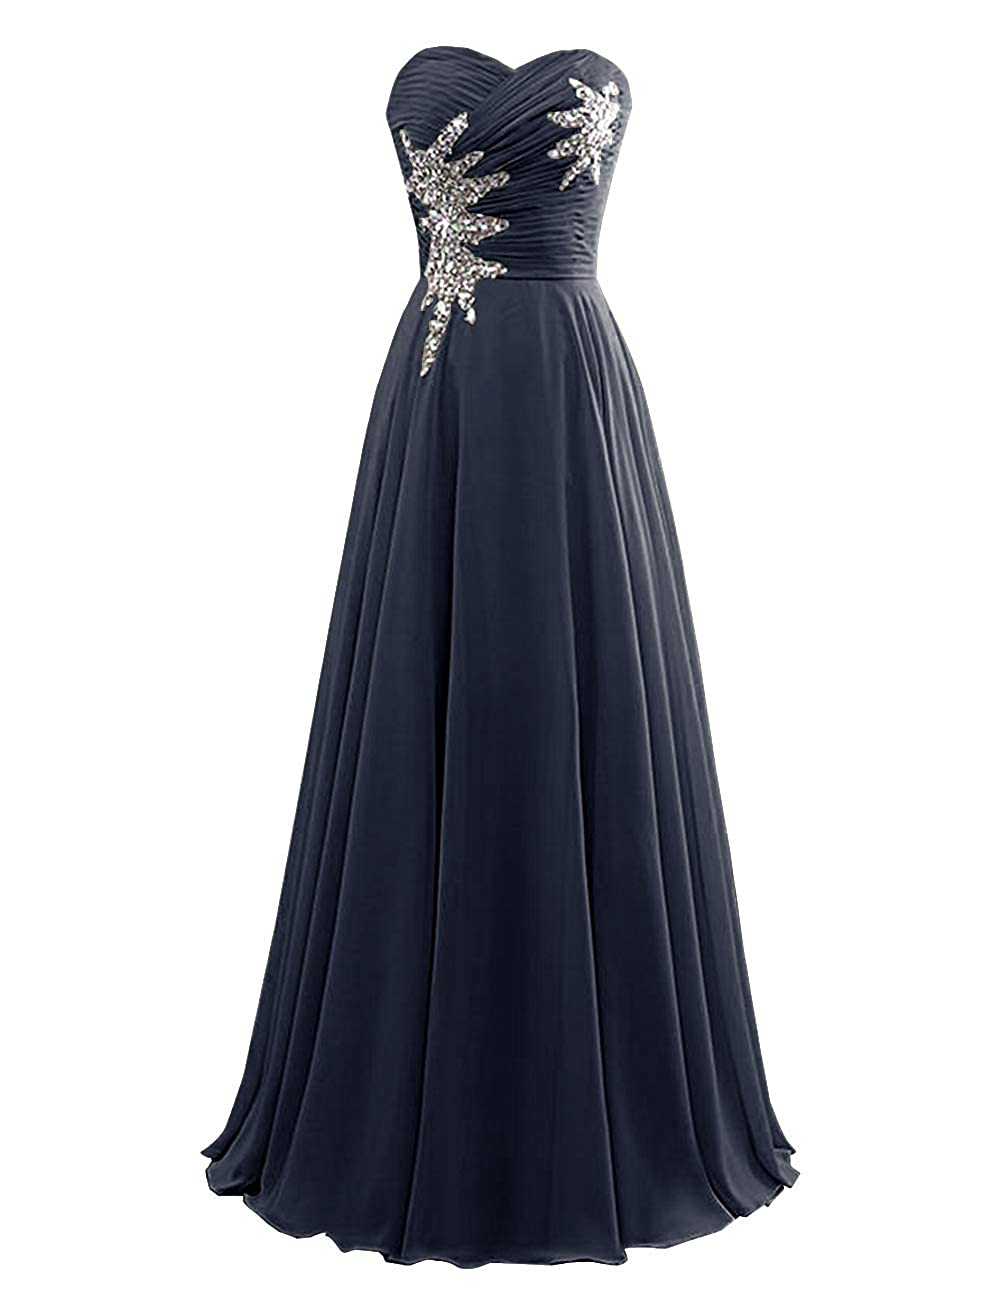 Navy bluee Women's Strapless Bridesmaid Dresses Beaded Prom Wedding Party Gowns